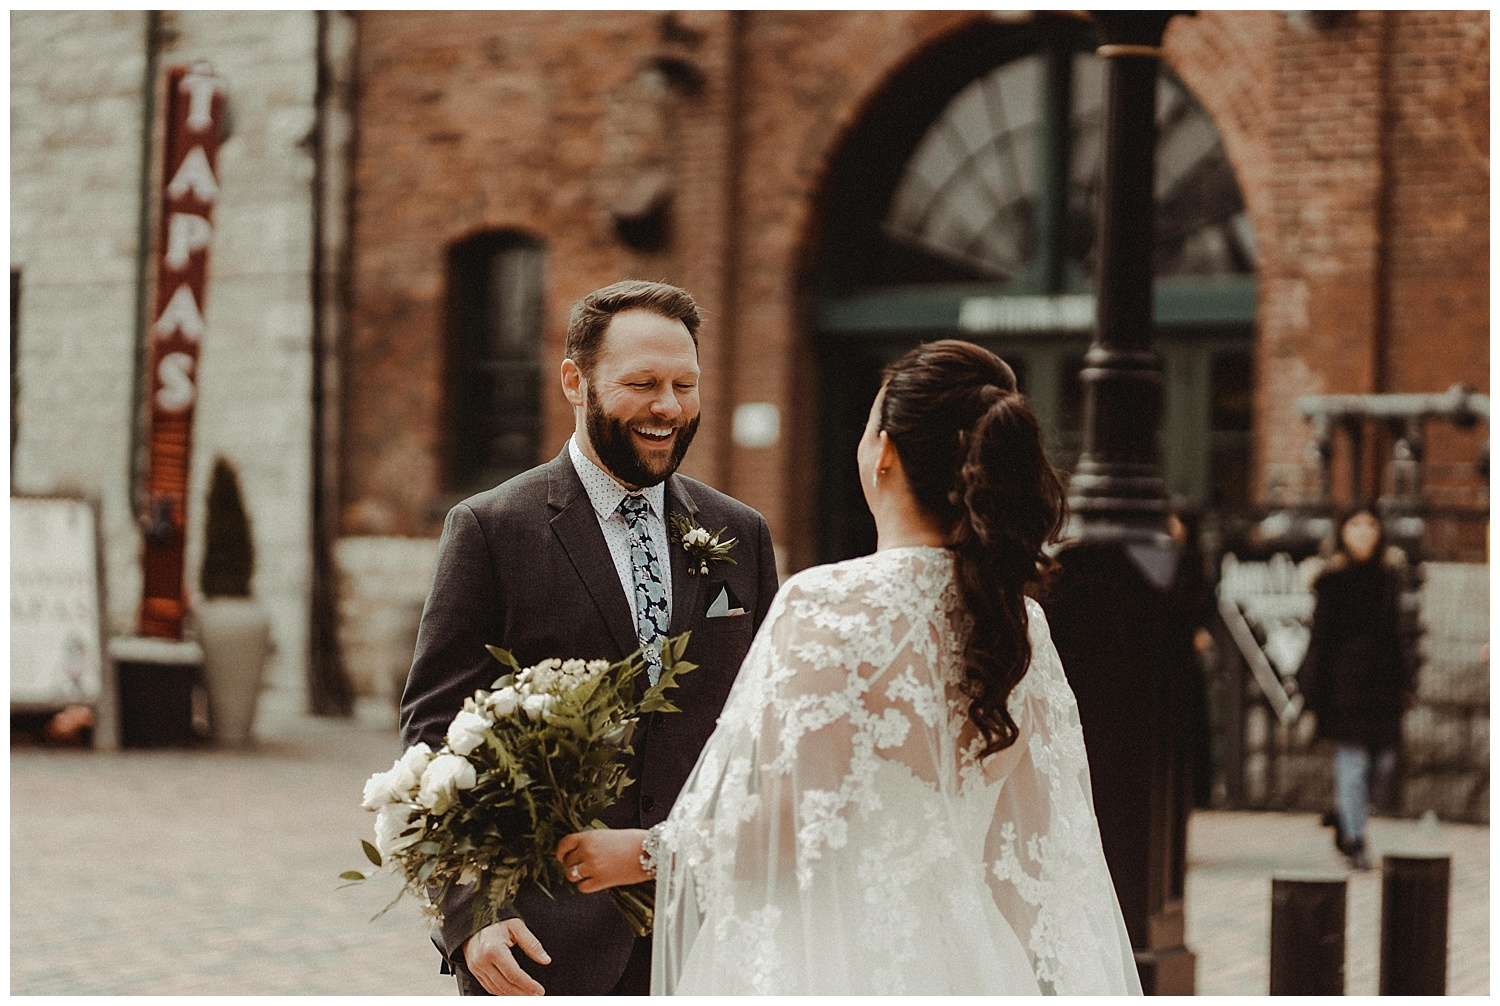 Katie Marie Photography | Archeo Wedding Arta Gallery Wedding | Distillery District Wedding | Toronto Wedding Photographer | Hamilton Toronto Ontario Wedding Photographer |_0008.jpg